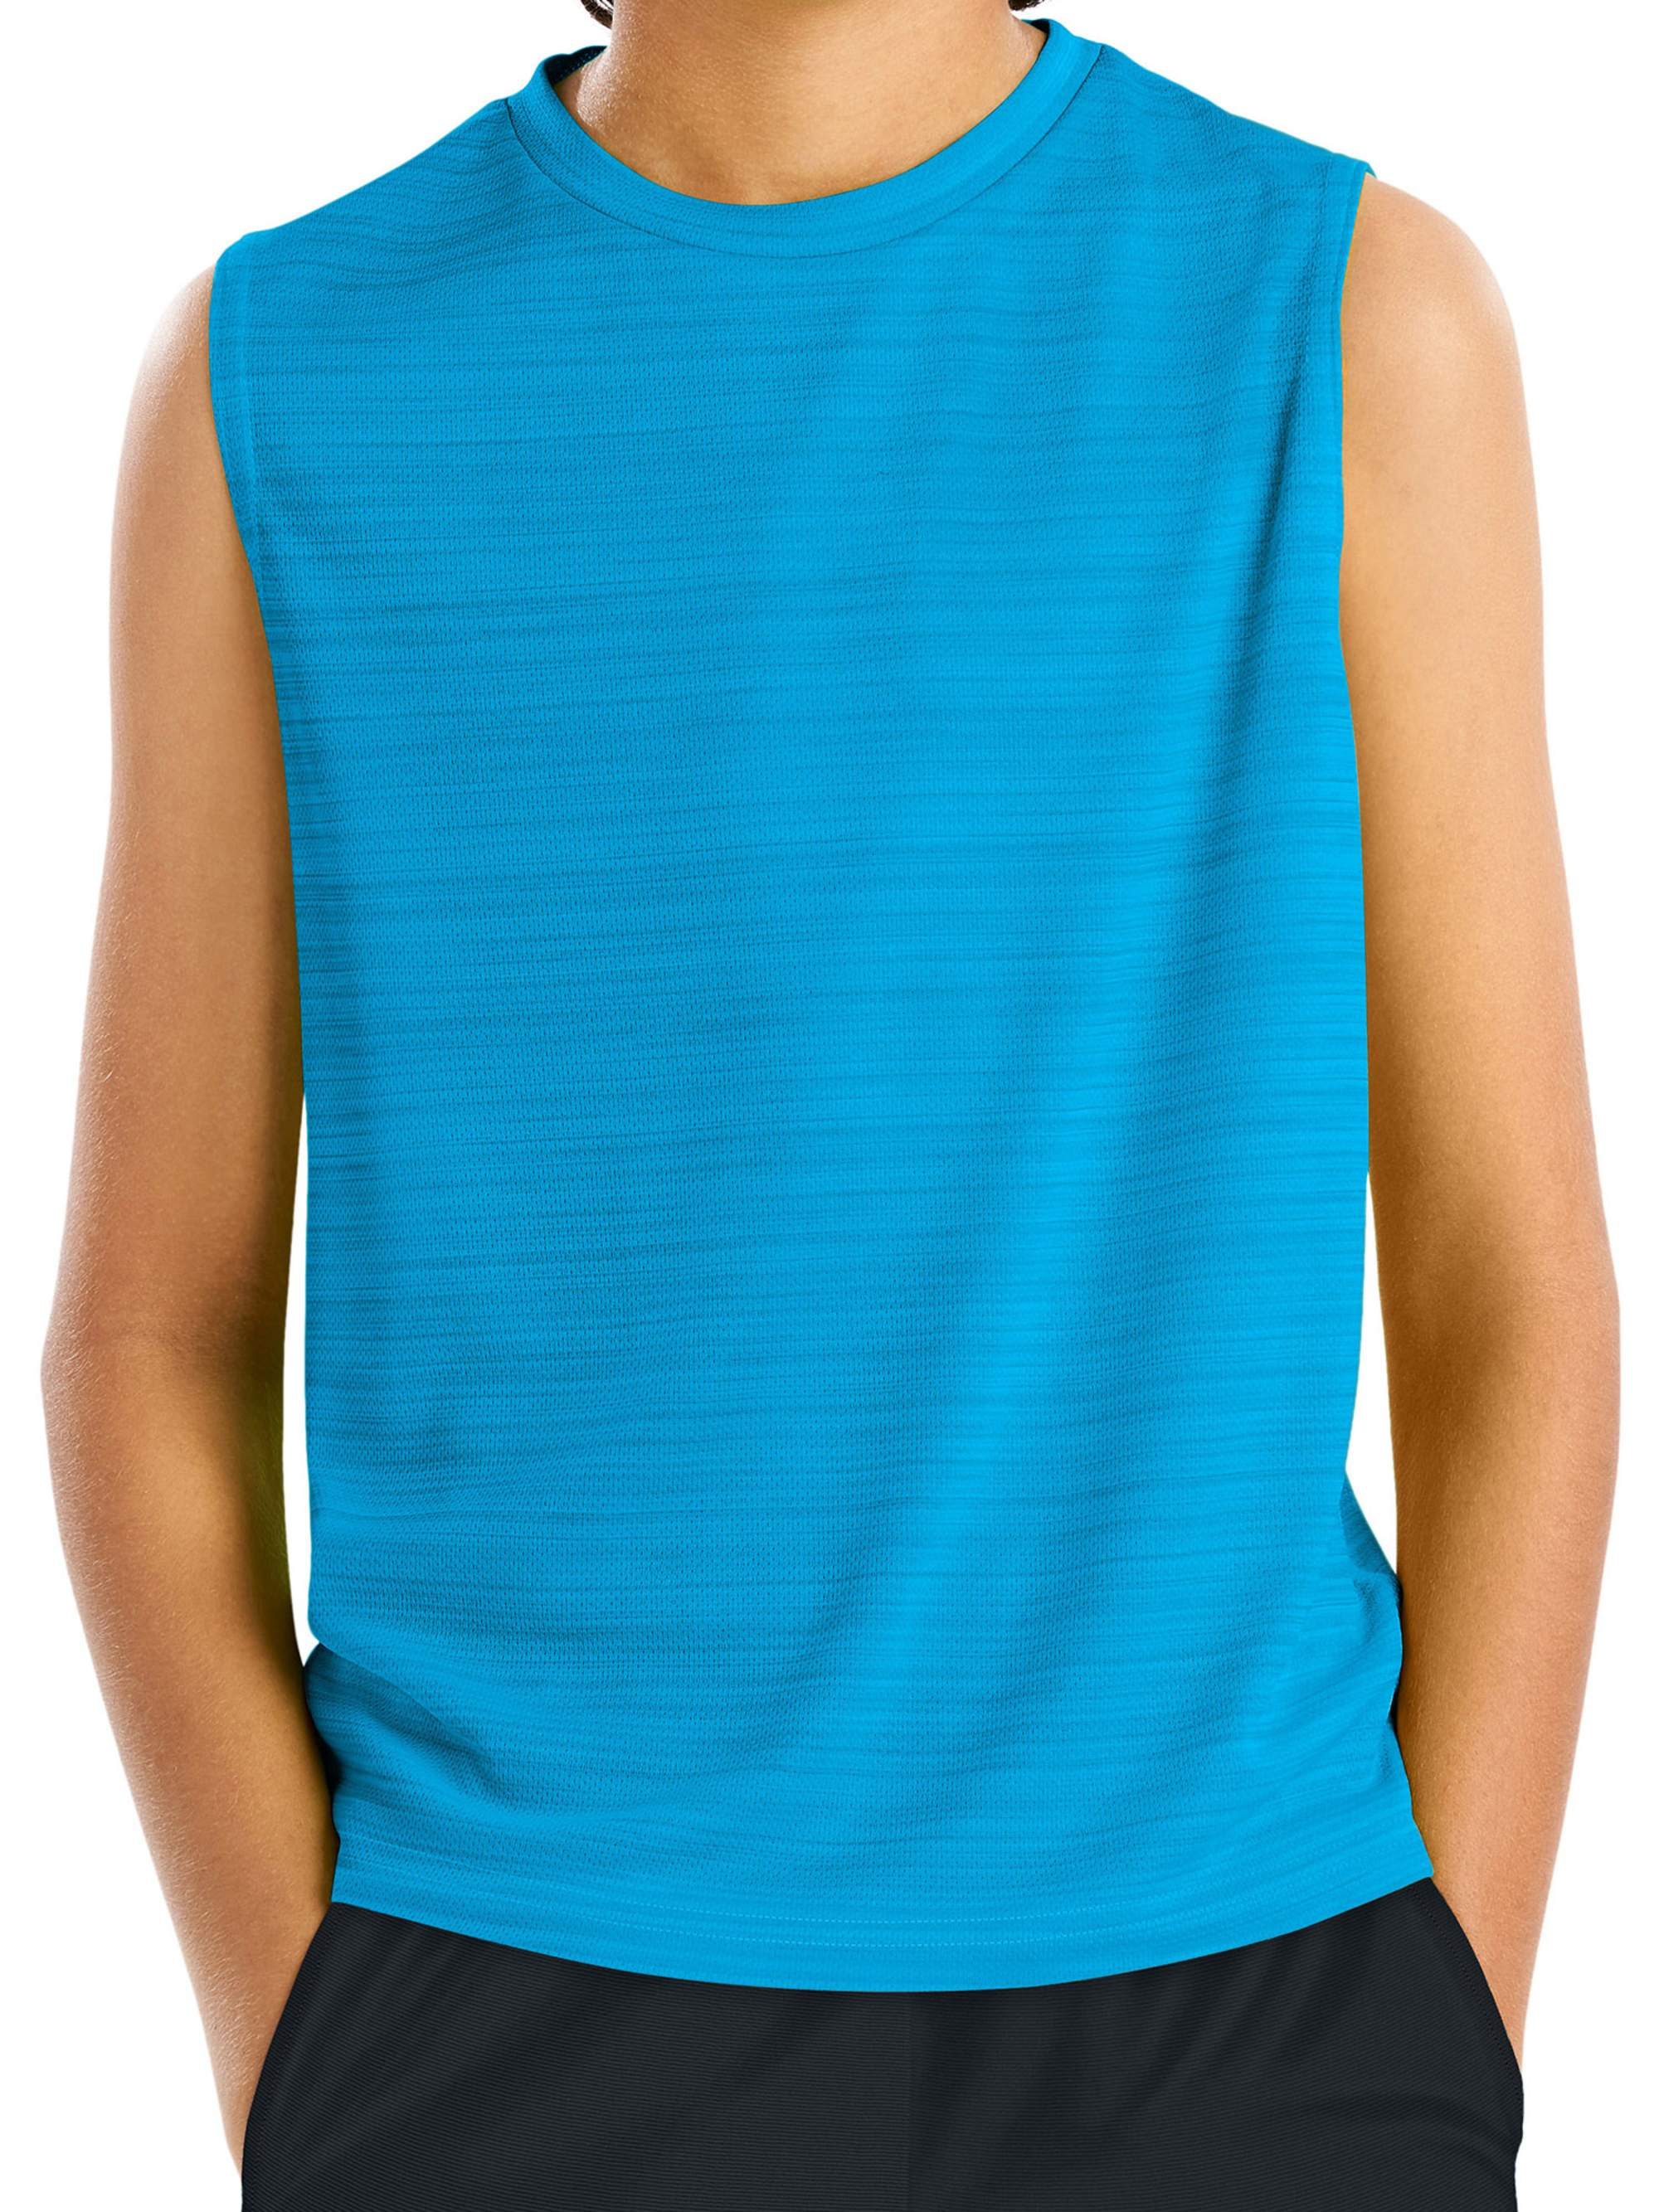 Boys' Sleeveless Heathered Performance Tee